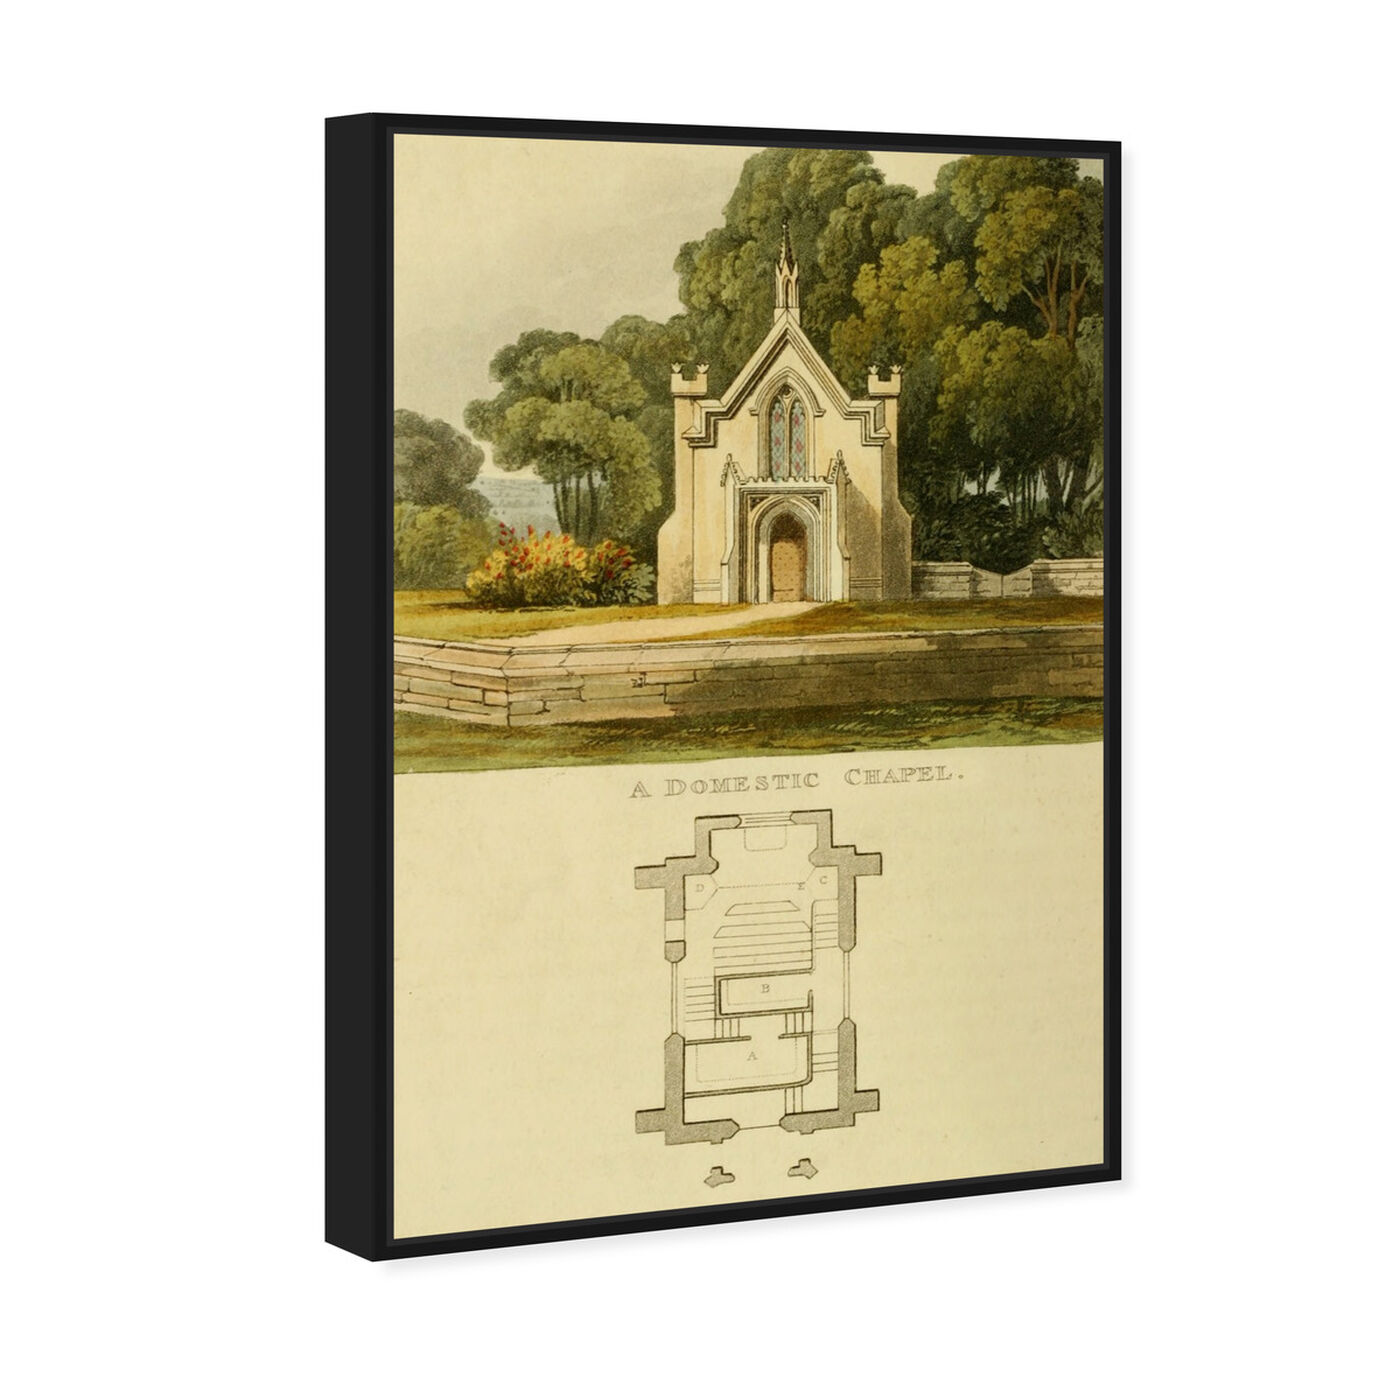 Angled view of Domestic Chapel - The Art Cabinet featuring classic and figurative and classic art.